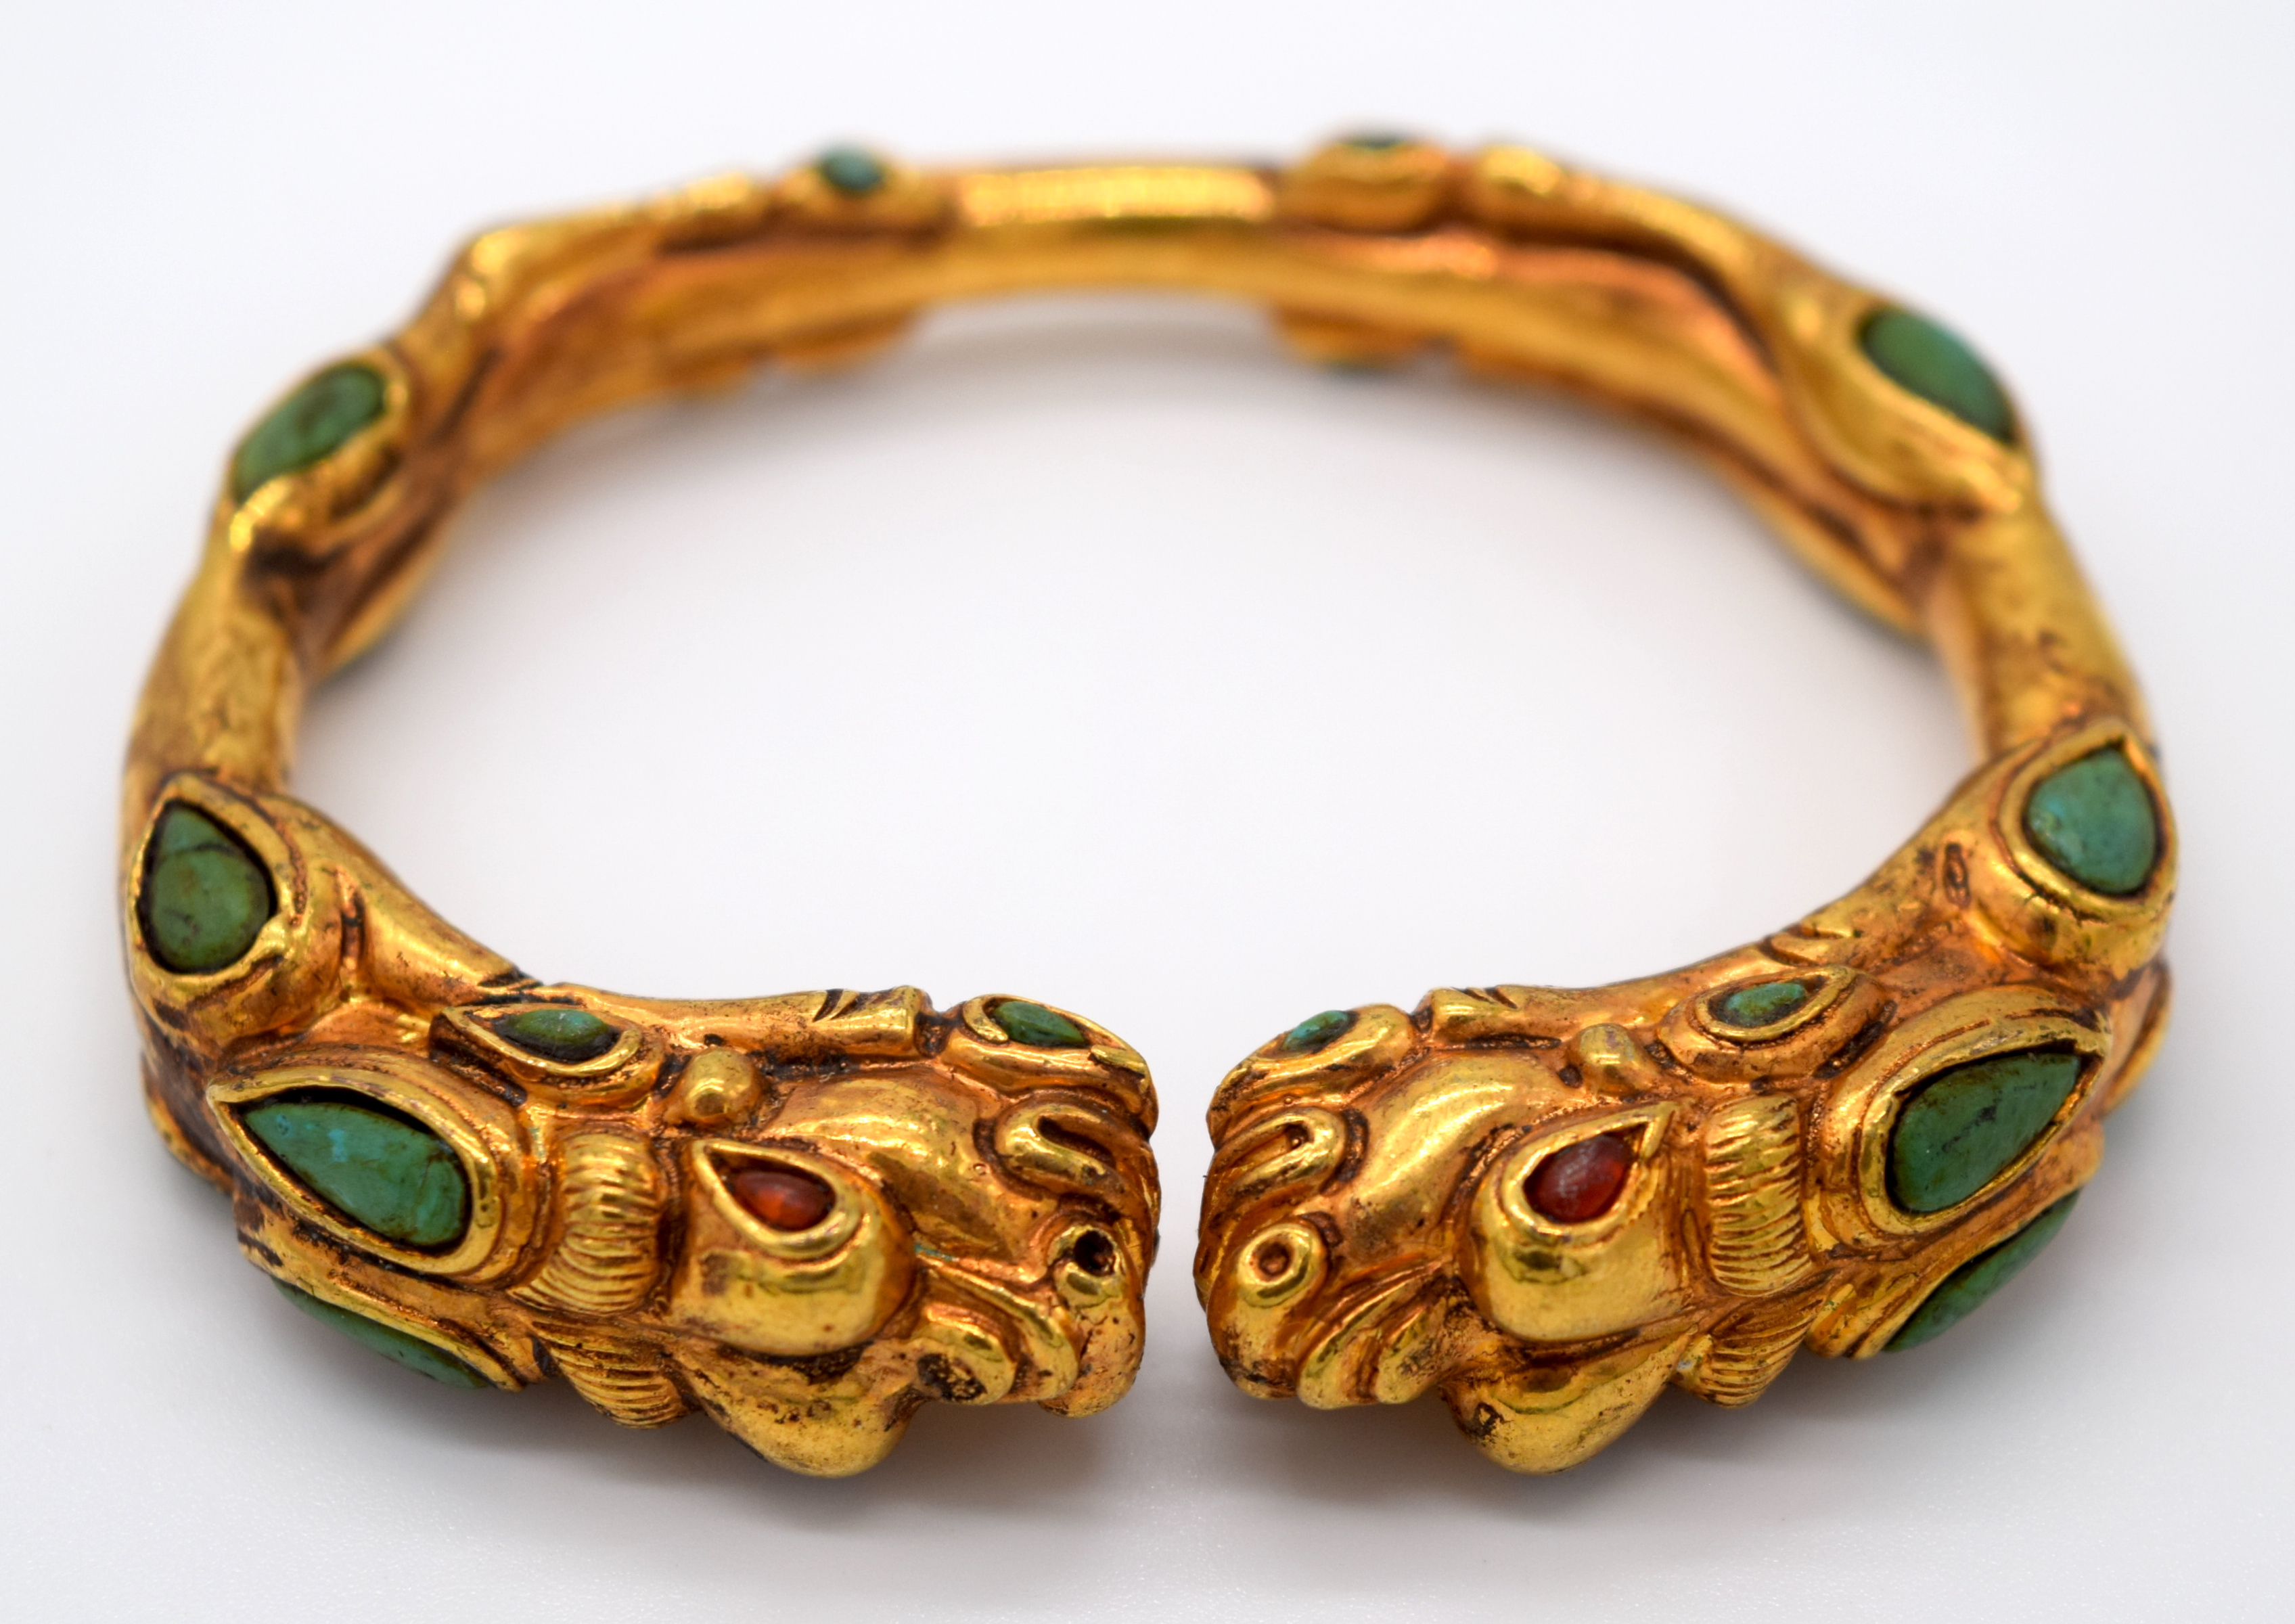 A Chinese yellow metal dragon bracelet inlaid with turquoise stones 7.5 x 6.5cm - Image 2 of 4